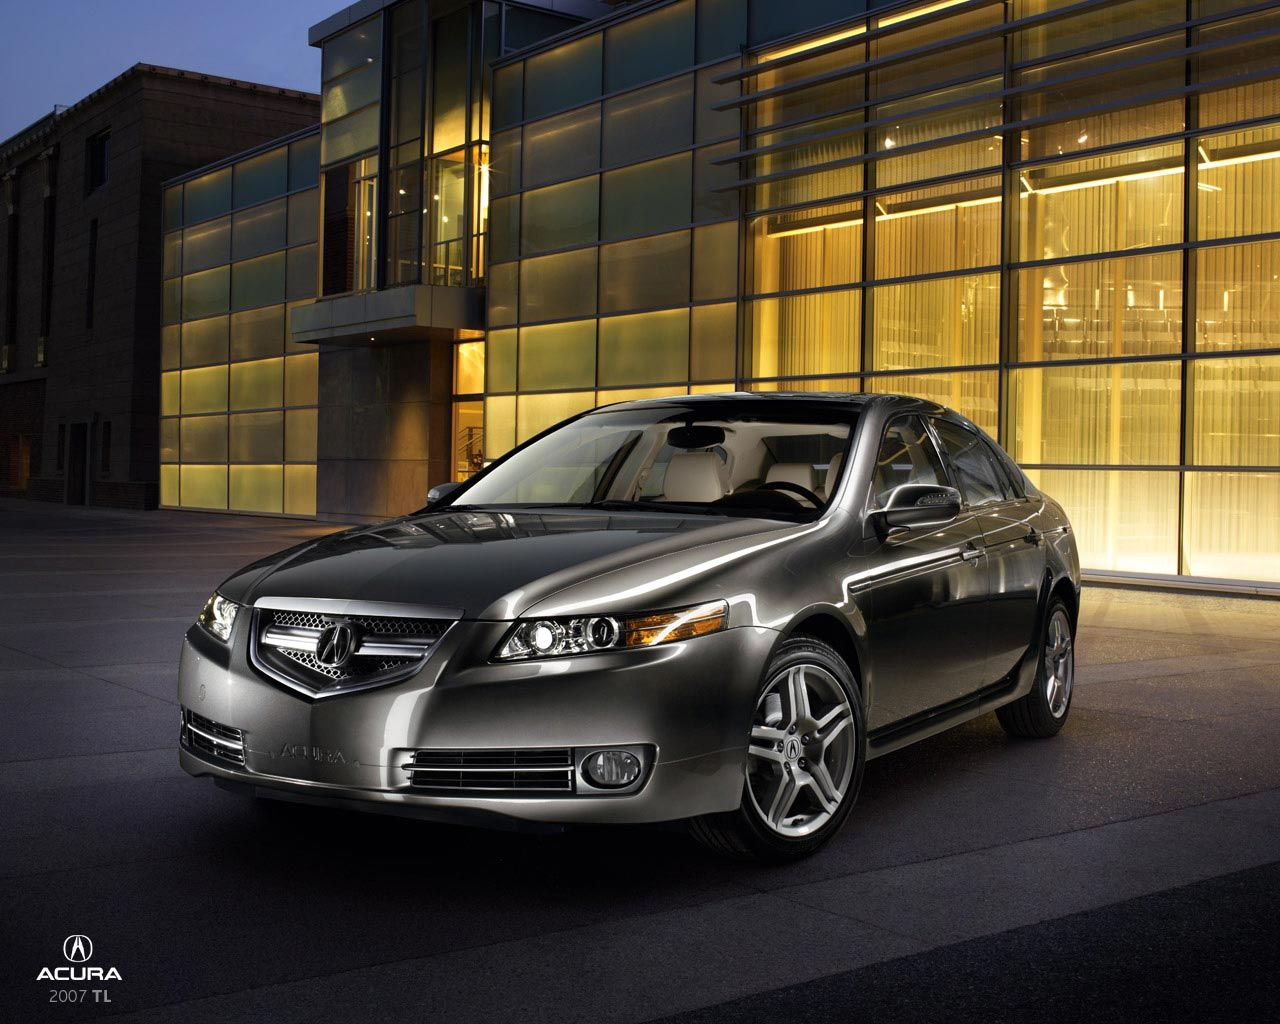 Free Download Acura TL Wallpapers 184 Post At December 6